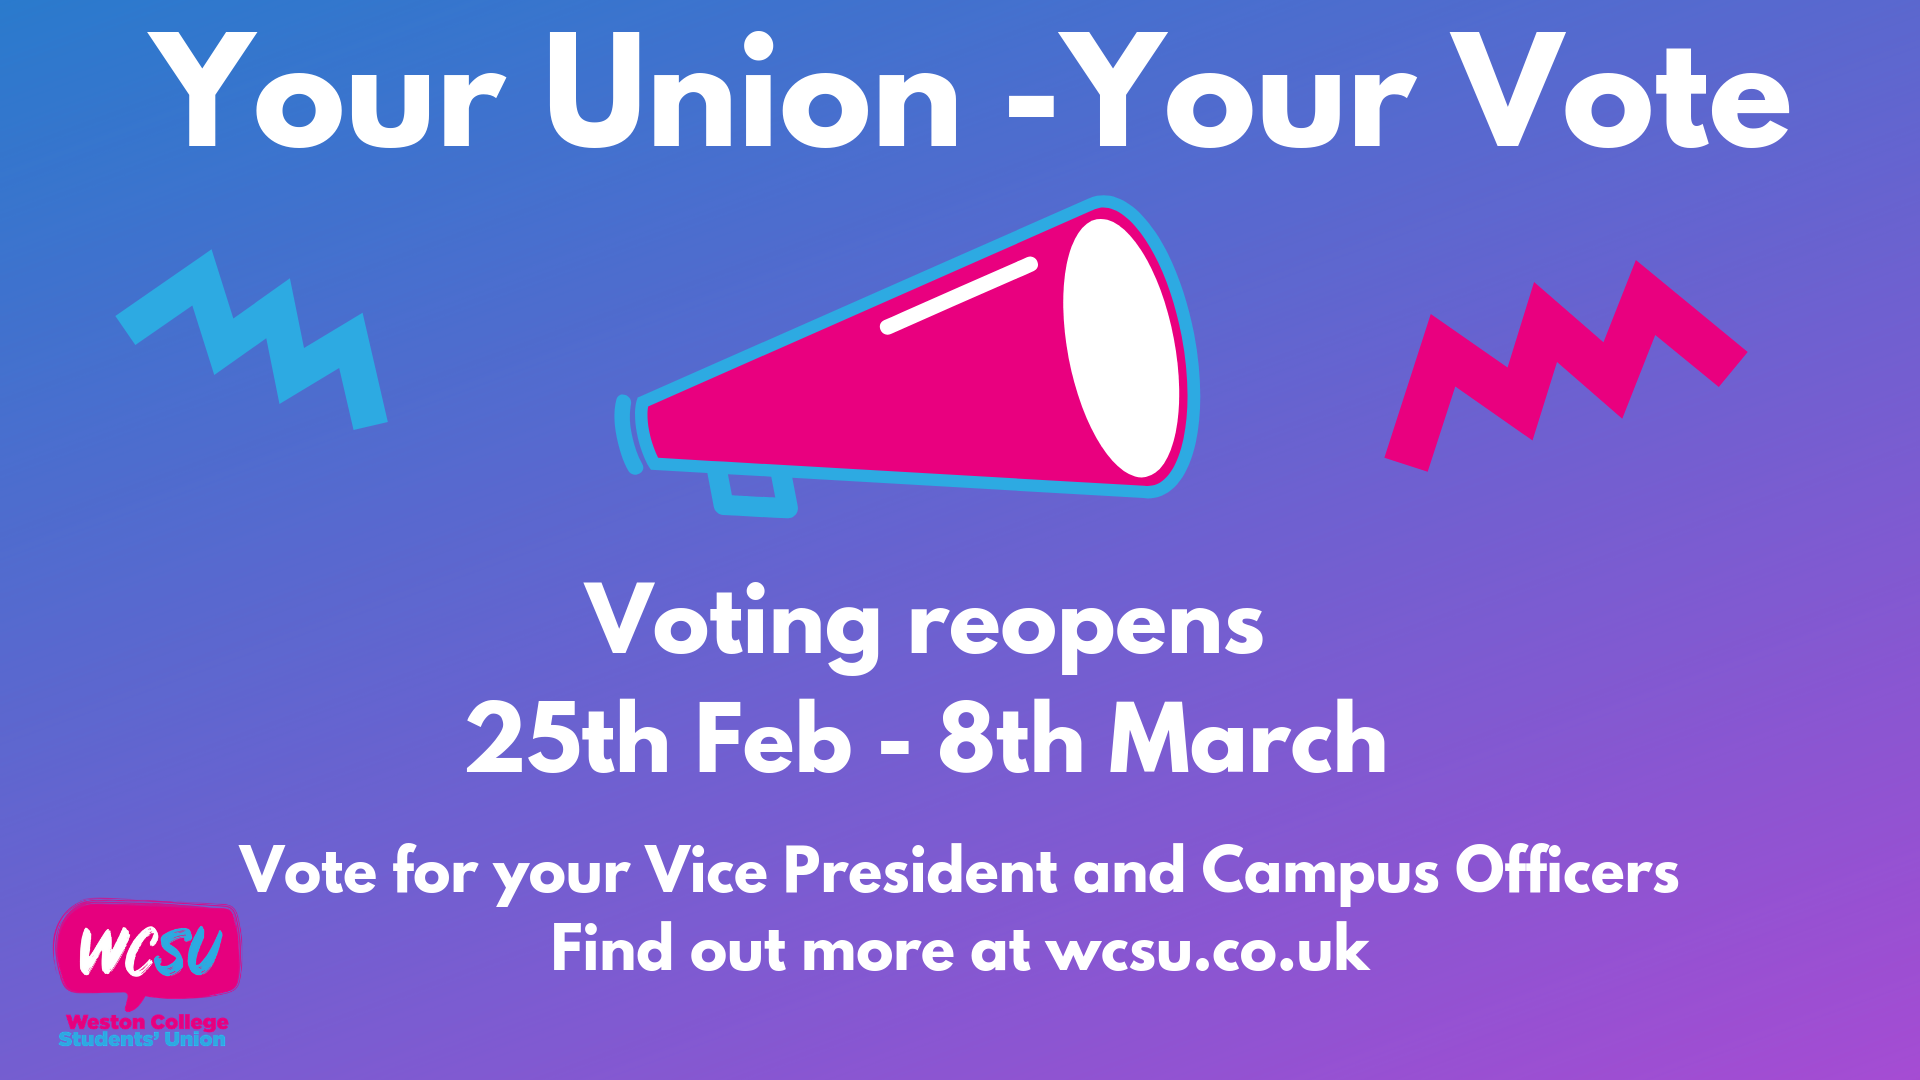 Your union your vote reopen